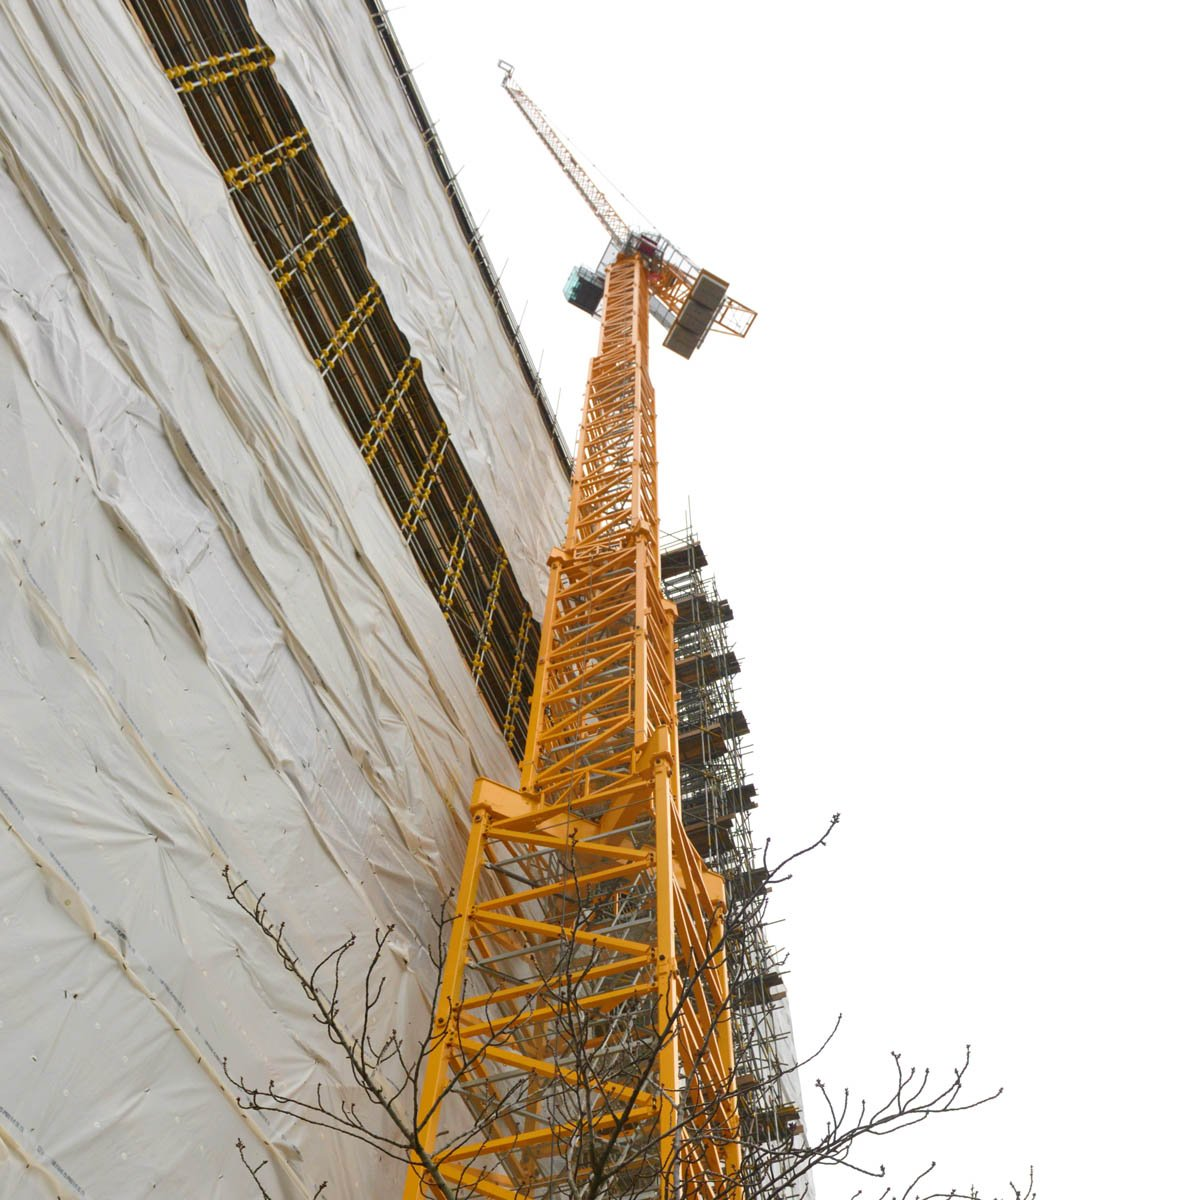 Bennetts Tower Cranes on Twitter: